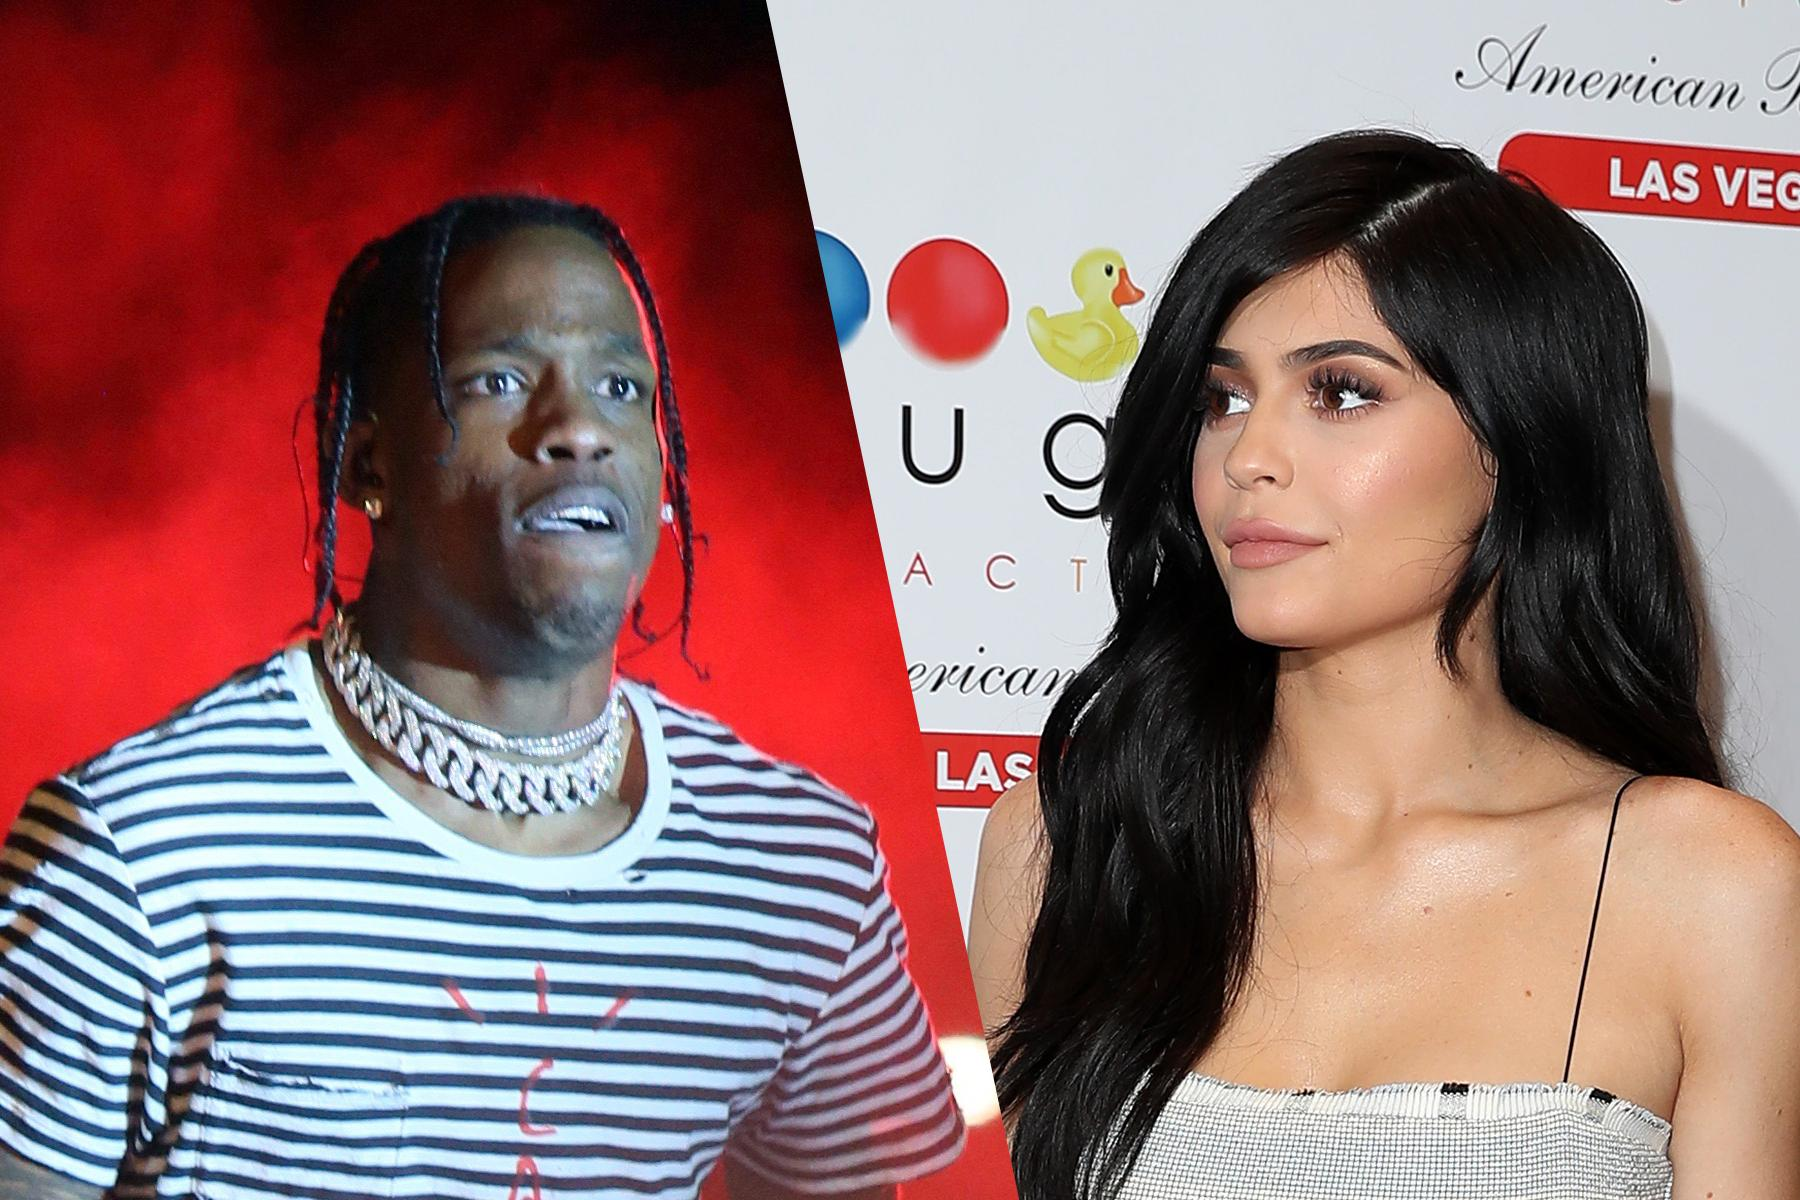 Travis Scott Responds To Kylie Jenner Cheating Accusations After